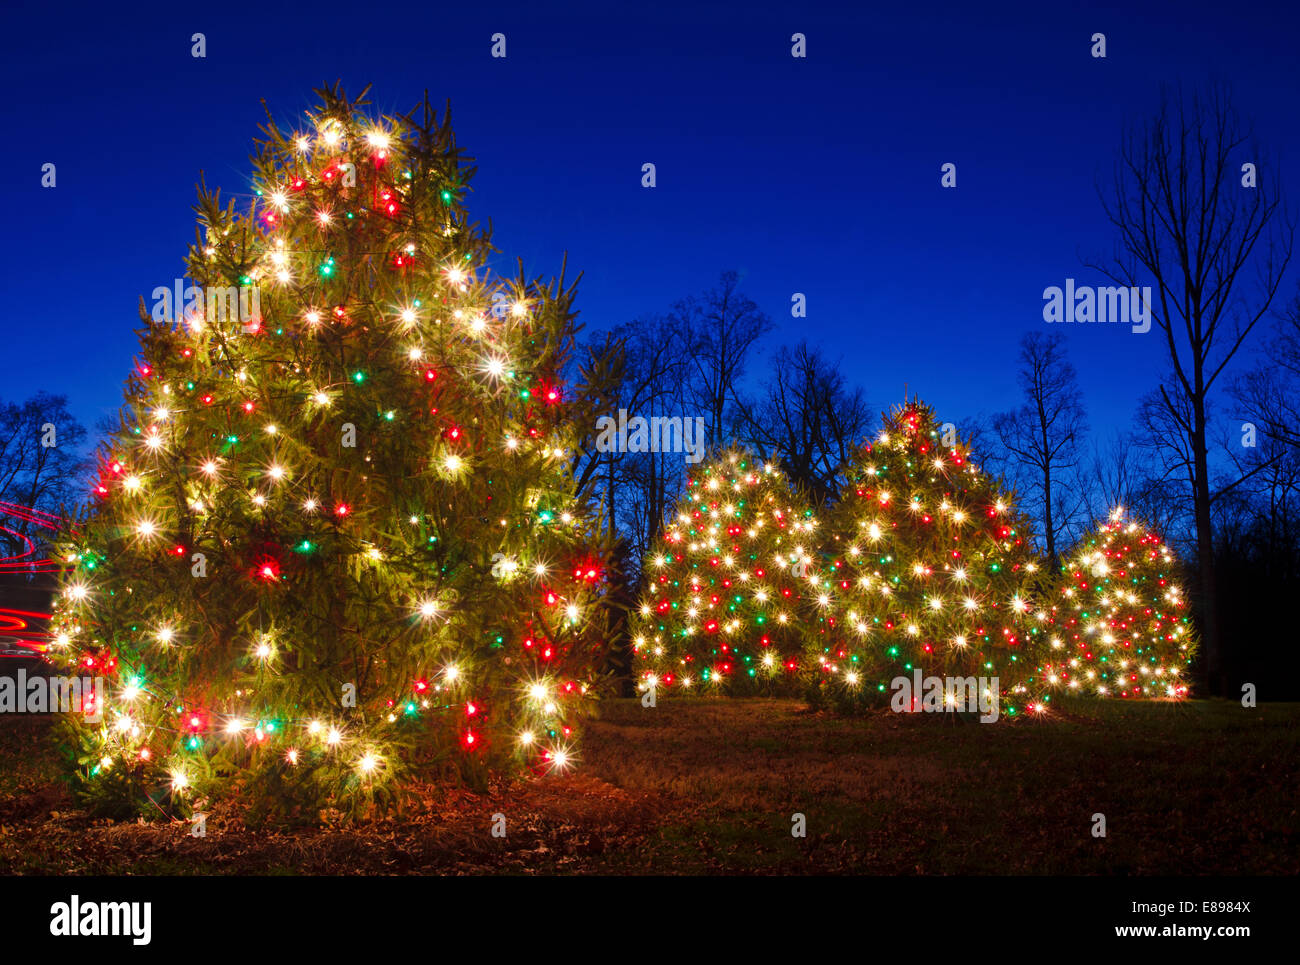 Outdoor Christmas Trees Have Been Decorated With Red, Green And White Lights  And Shot Against A Brilliant Blue Sky.